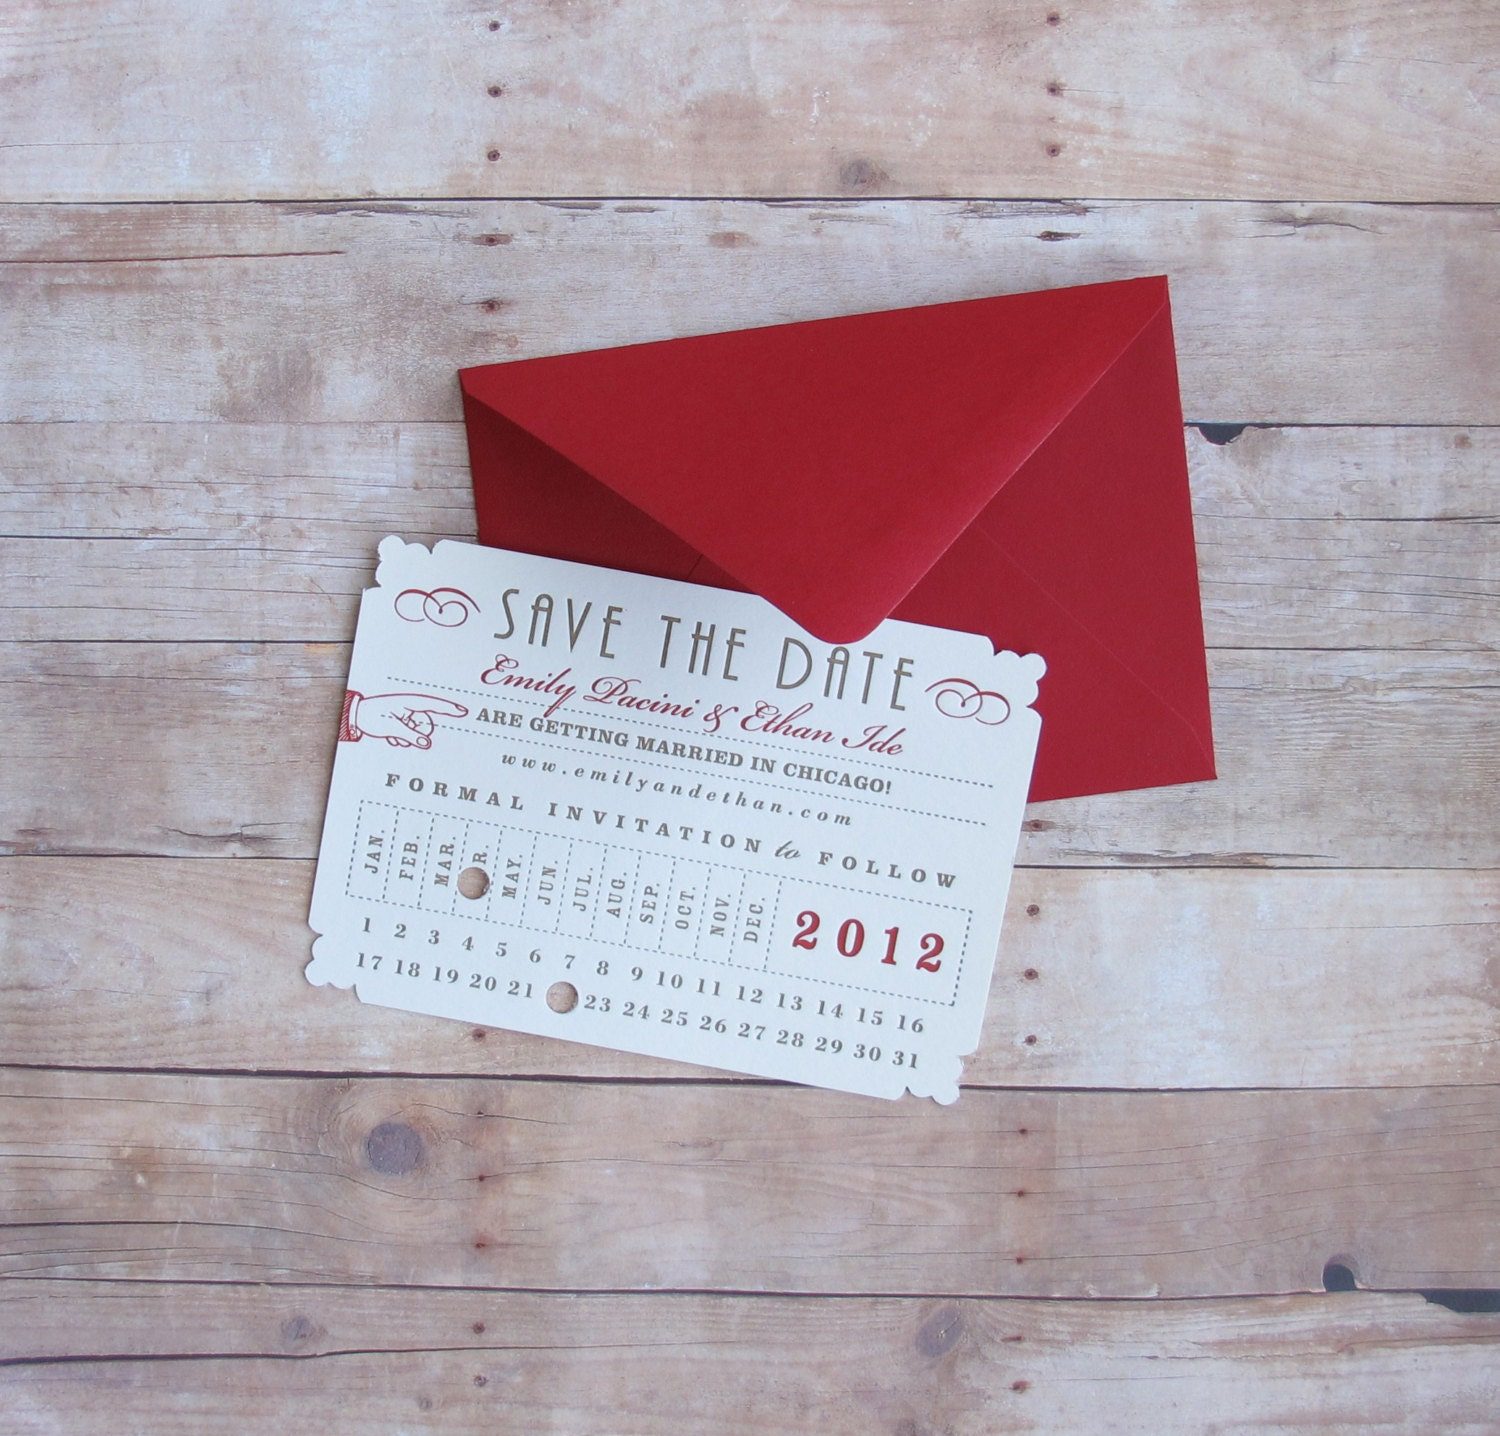 Punch Card Ticket Union Station Train Depot Save the Date – Save the Date Cards Birthday